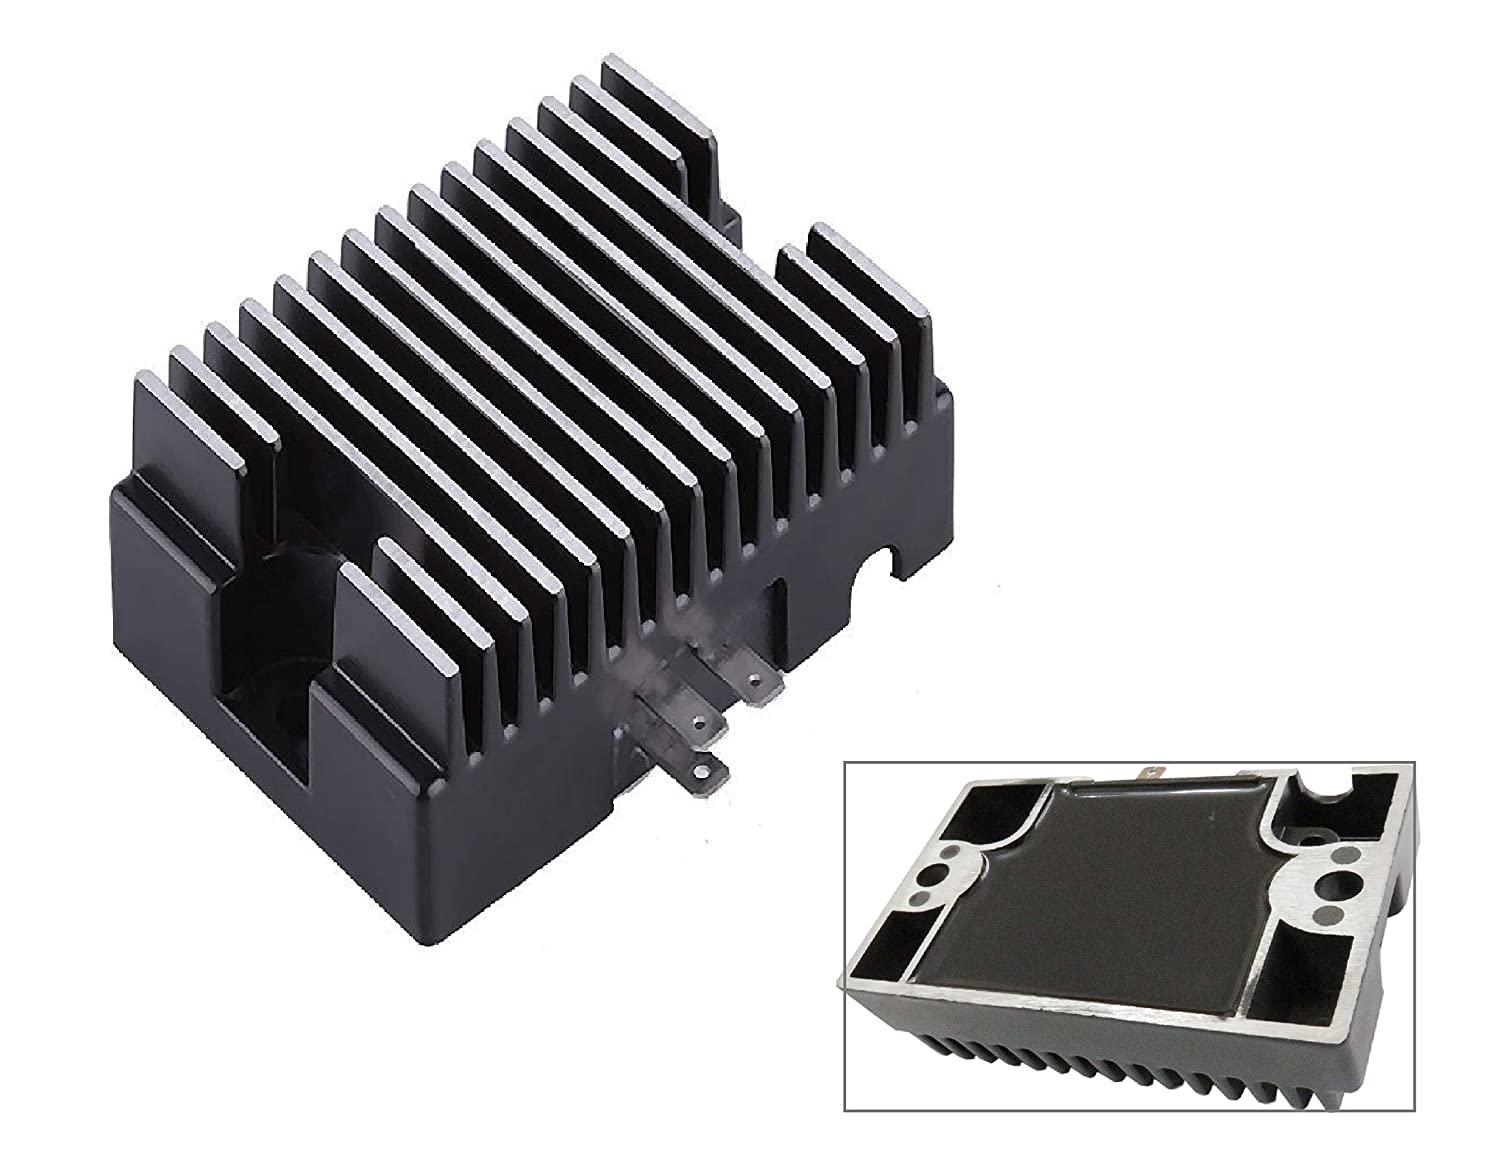 Voltage Regulator for Kohler K161 K181 K241 K301 K321 K341 K482 K532 K582 CH20 CH620 CH621 CH640 CH680 CH740 John Deere Lawn Tractor 110 112 140 8HP-24HP Engines With 15AMP Alternators